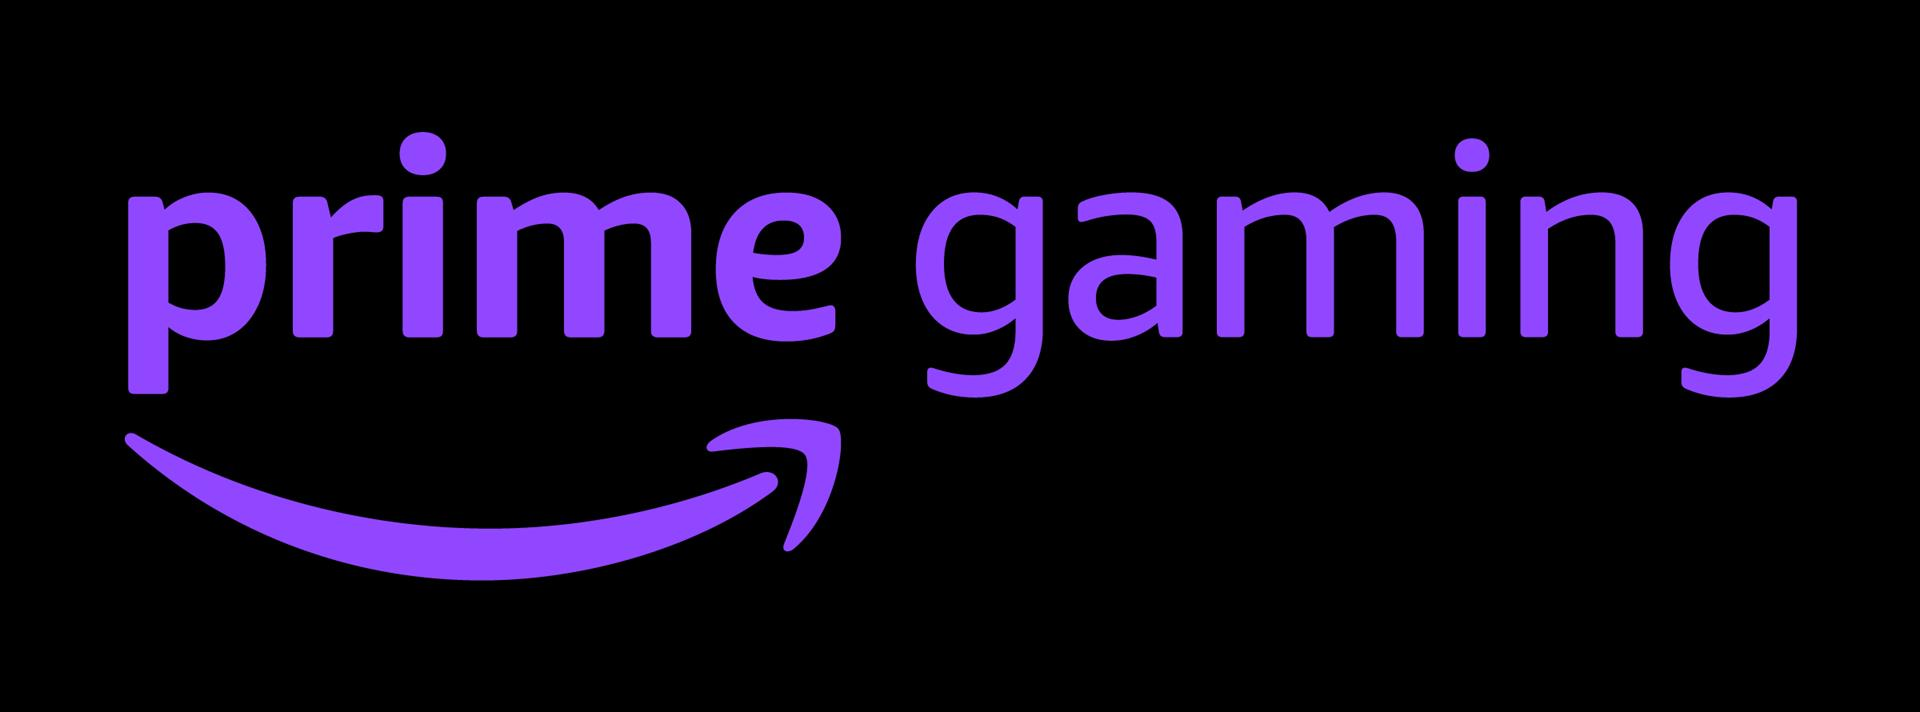 Twitch Prime is now Prime Gaming - VG247